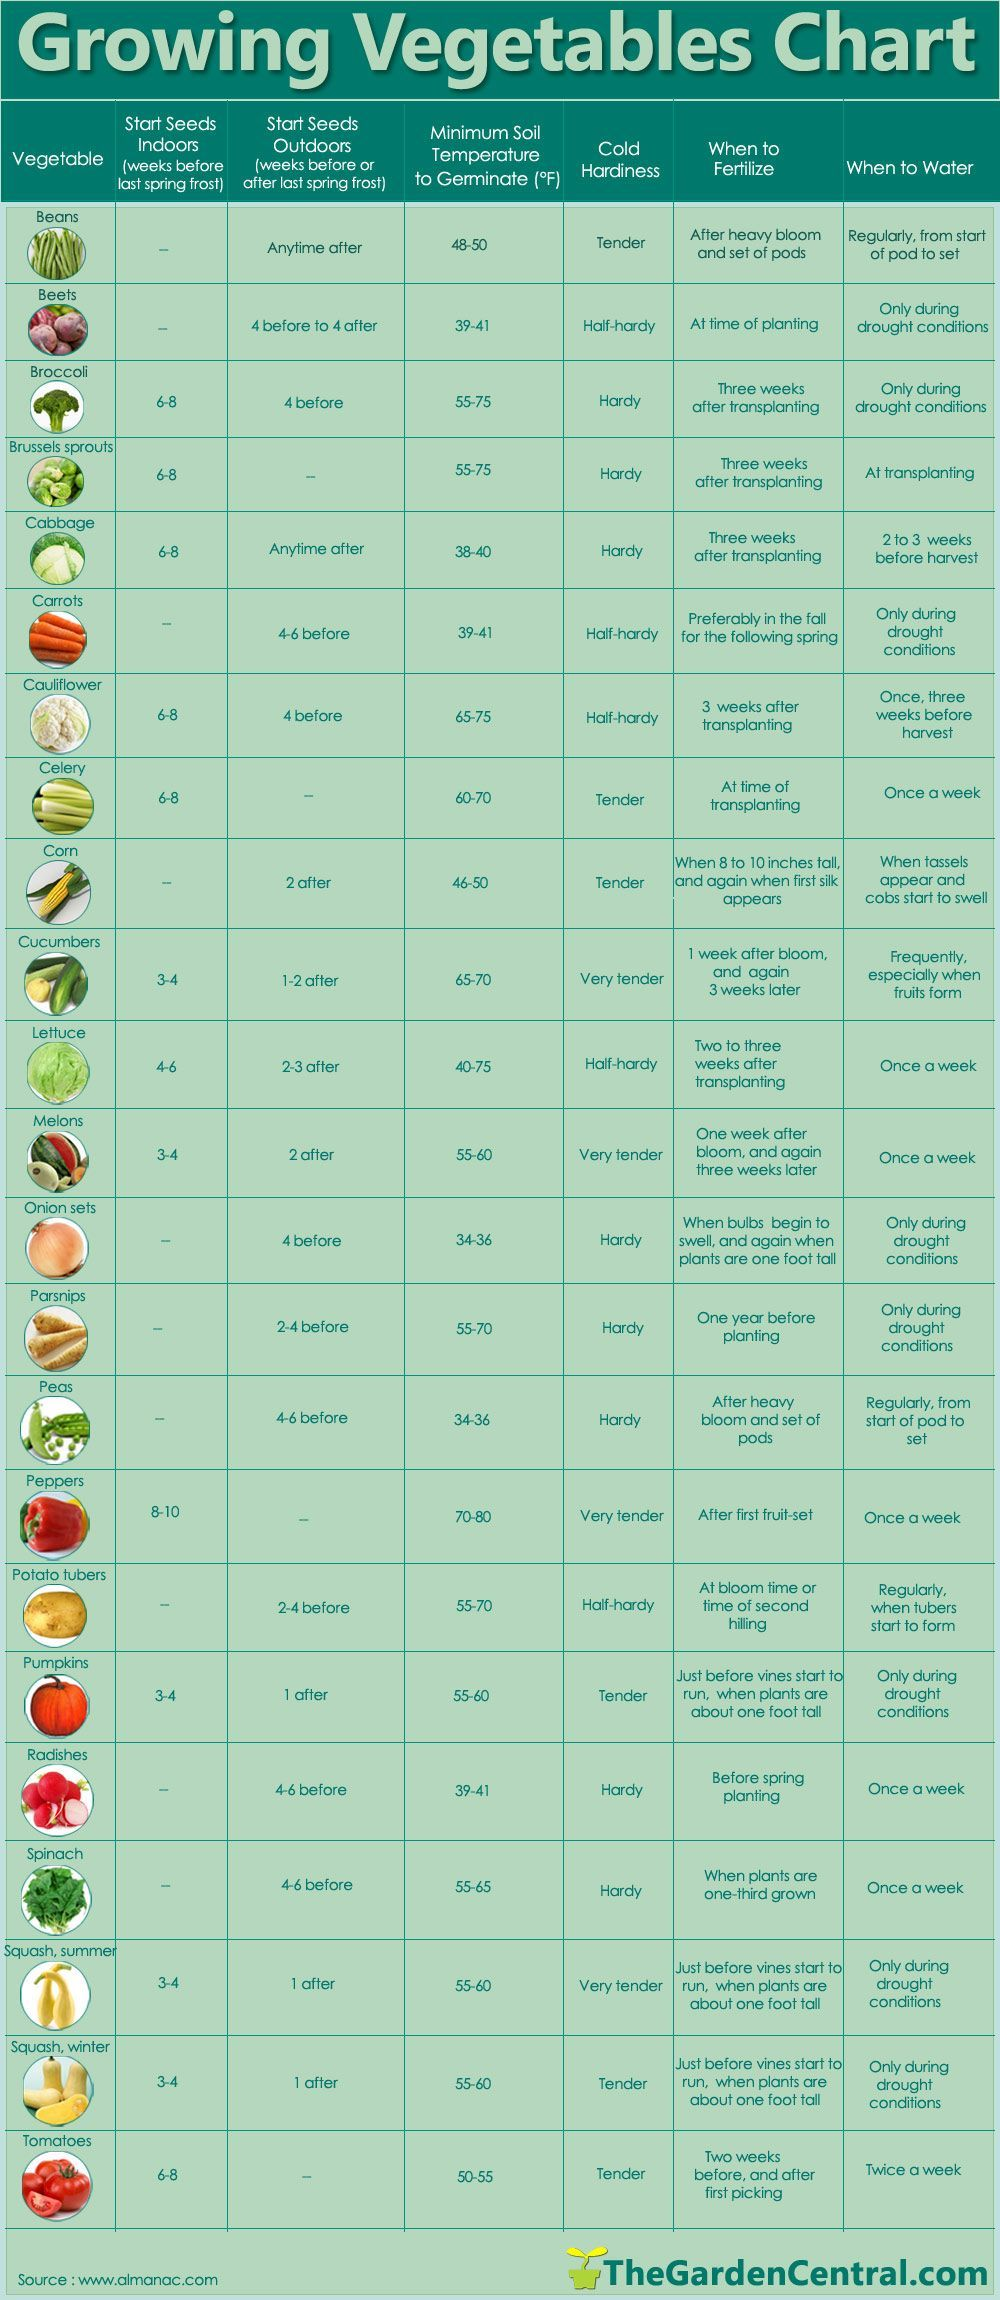 The Tasty Pinterest Roundup: Get Your Garden On Growing Your Own Vegetables, A Chart To Help. Tasty Pinterest Roundup: Get Your Garden On Growing Your Own Vegetables, A Chart To Help. | Year Zero Survival – Premium Survival Gear and BlogGrowing Your Own Vegetables, A Chart To Help. | Year Zero Survival – Premium Survival Gear and Blog